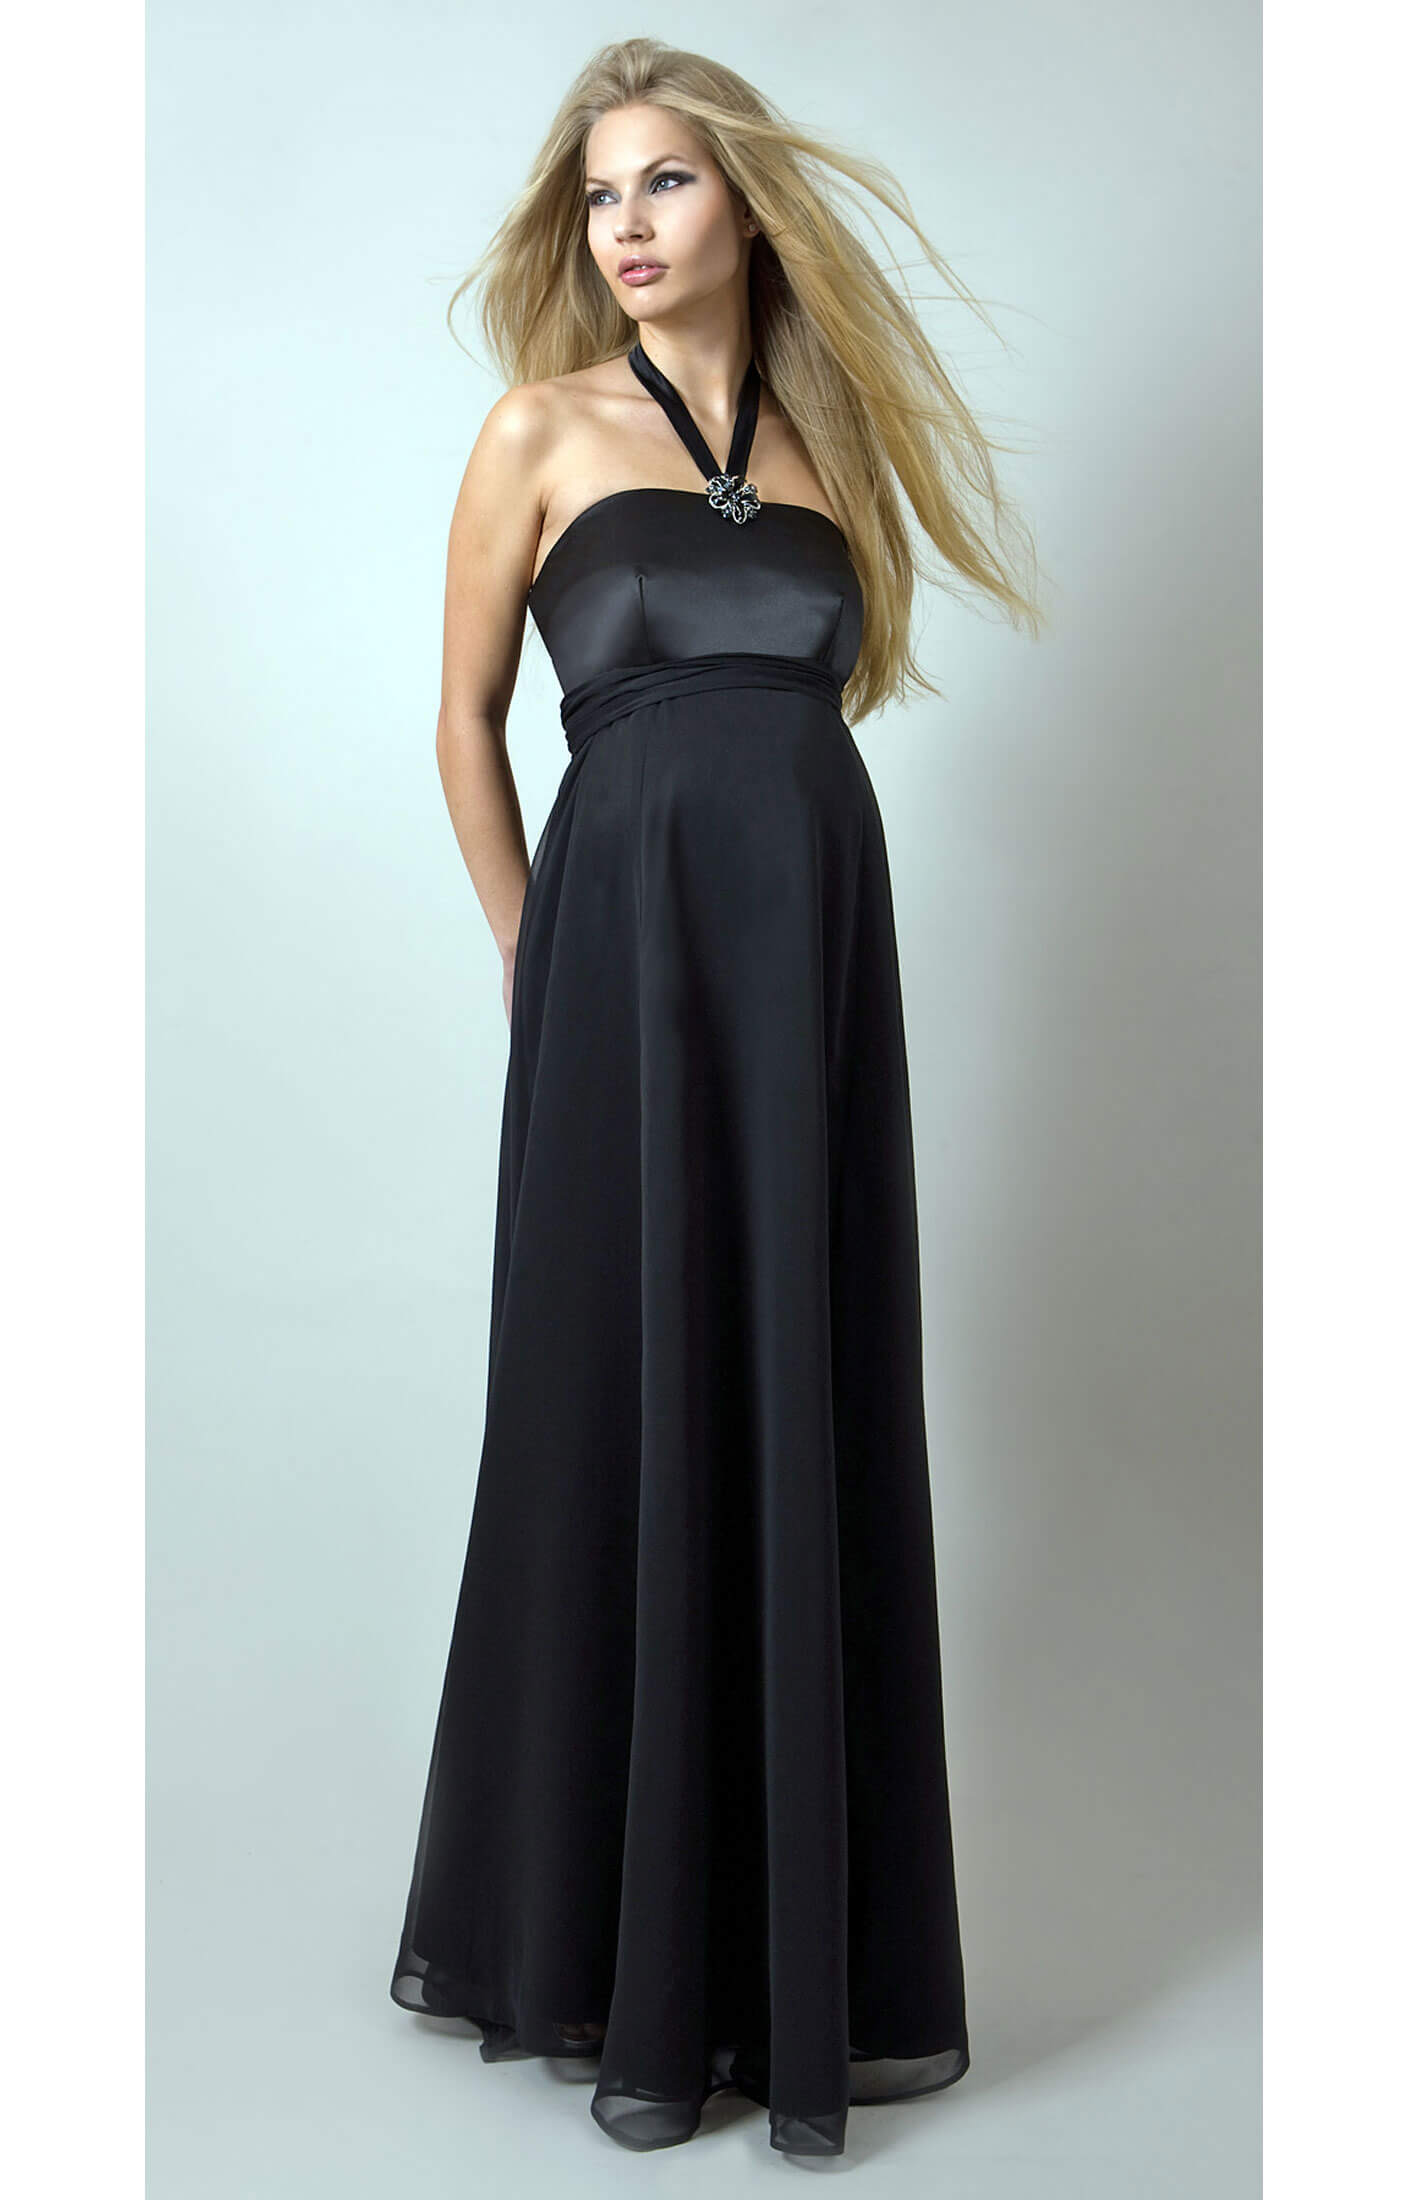 Black Tie Maternity Gown - Maternity Wedding Dresses, Evening Wear ...